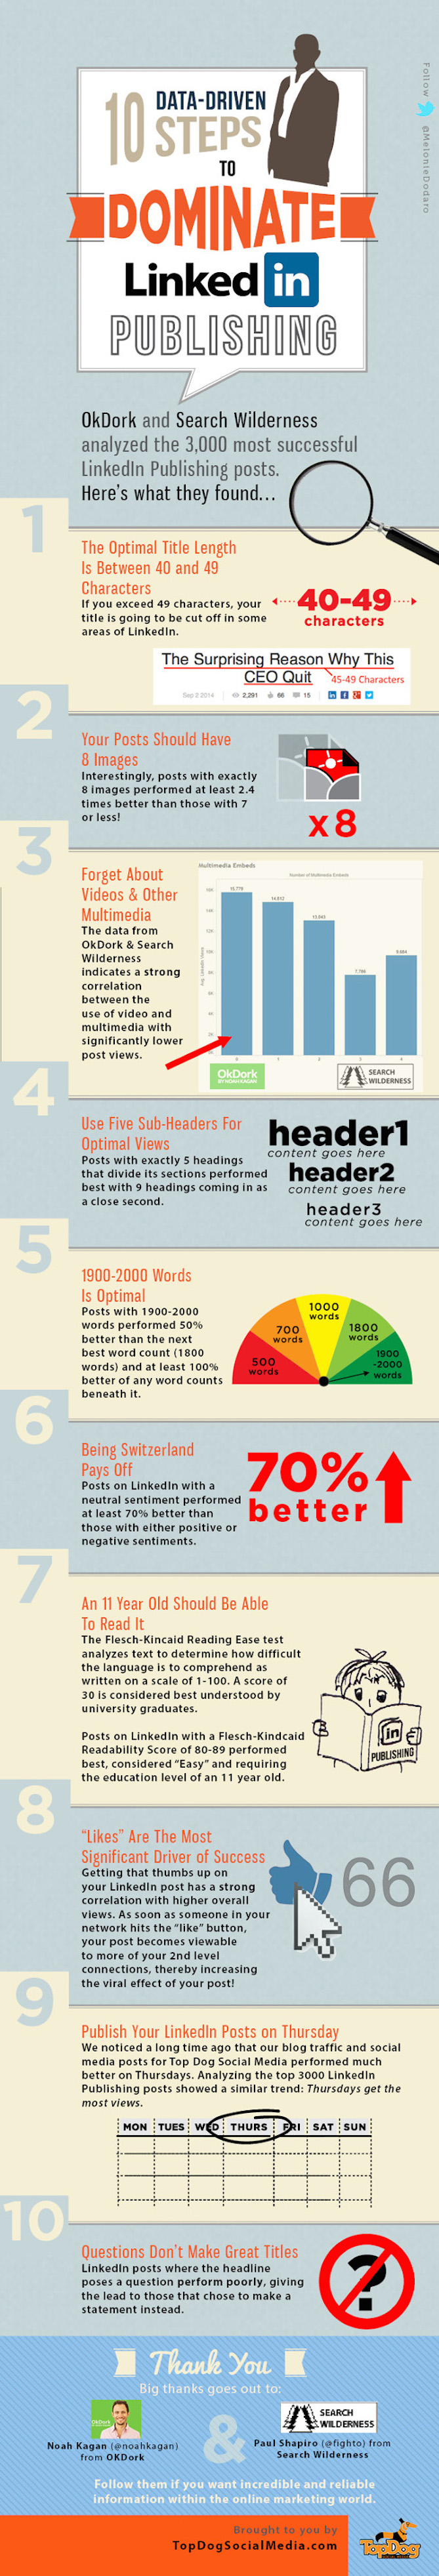 10 Steps To Dominate Linkedin Infographic